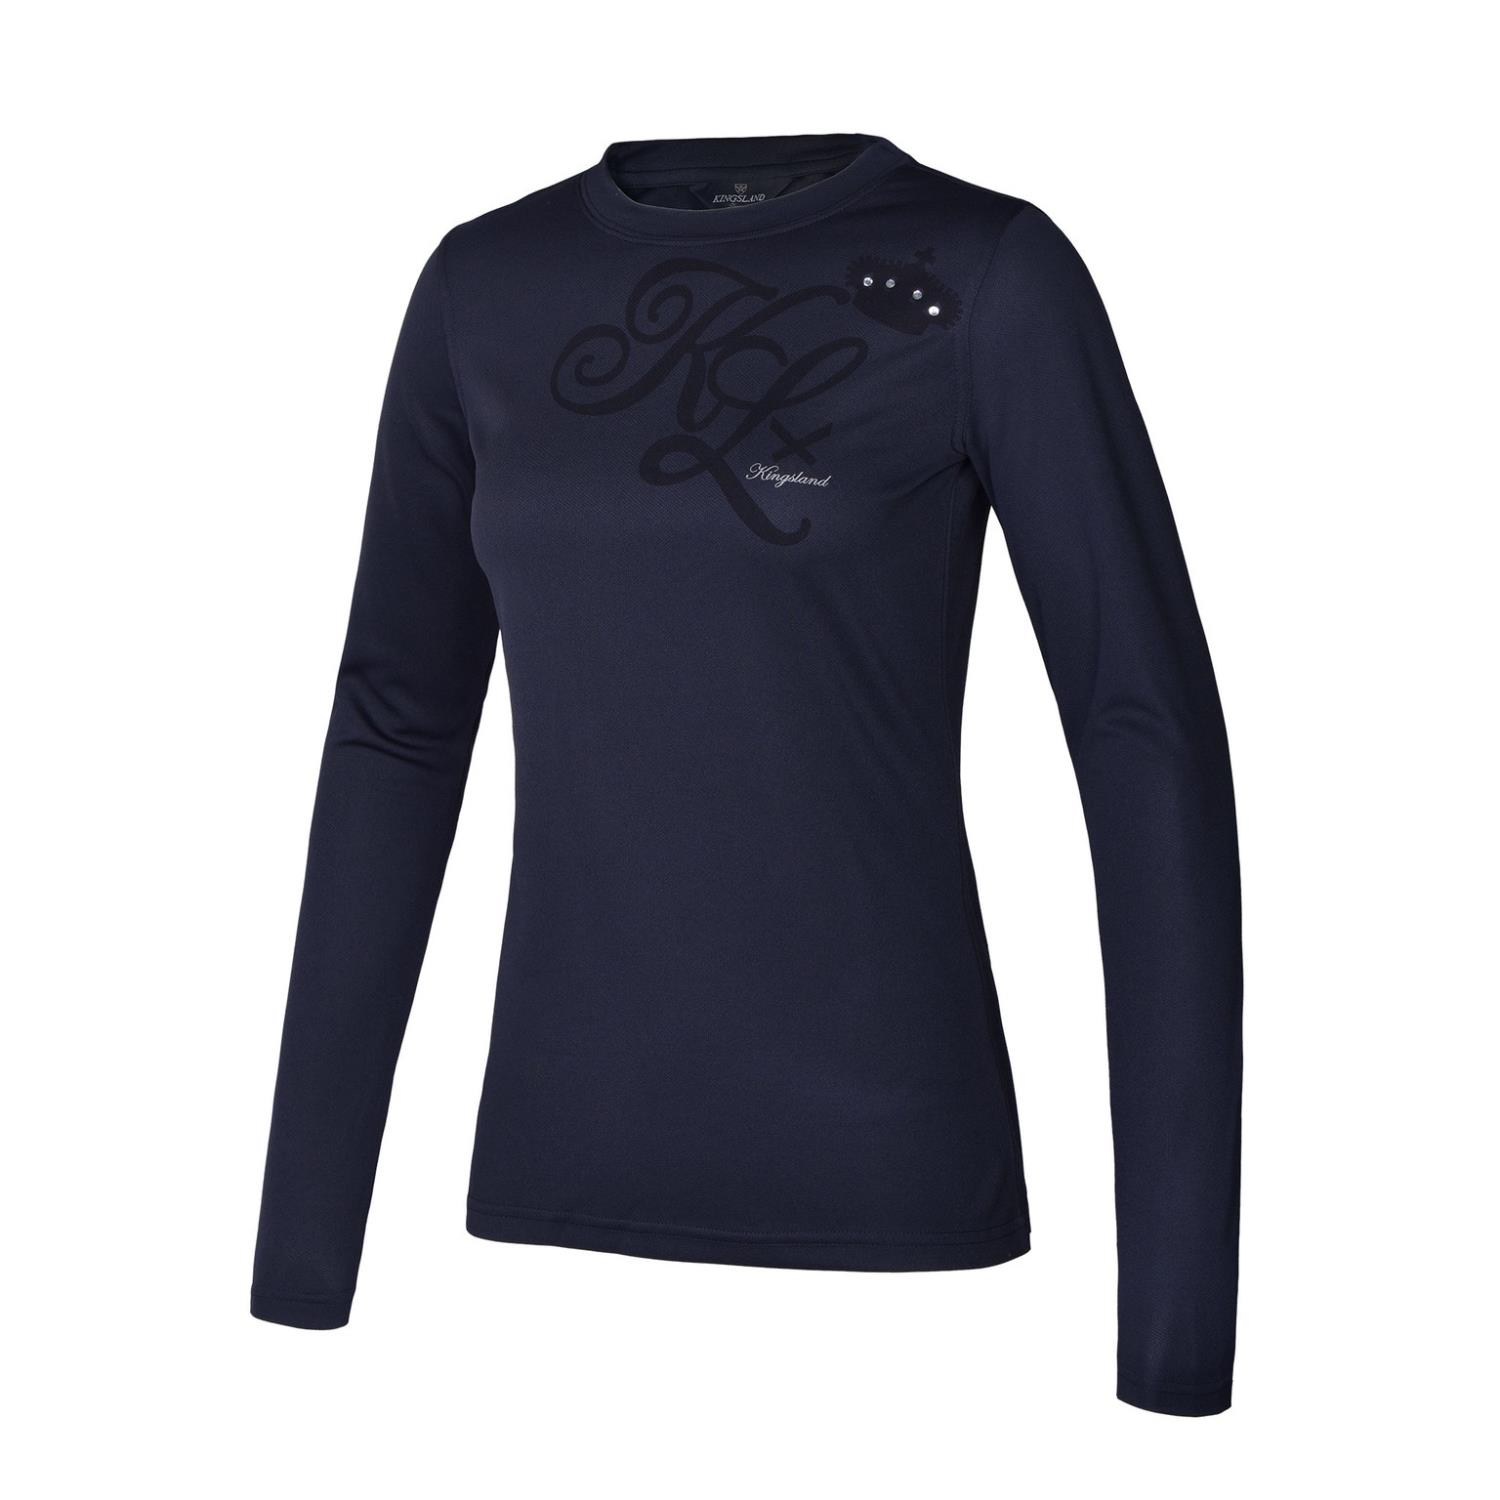 KL Salma Ladies Training Shirt